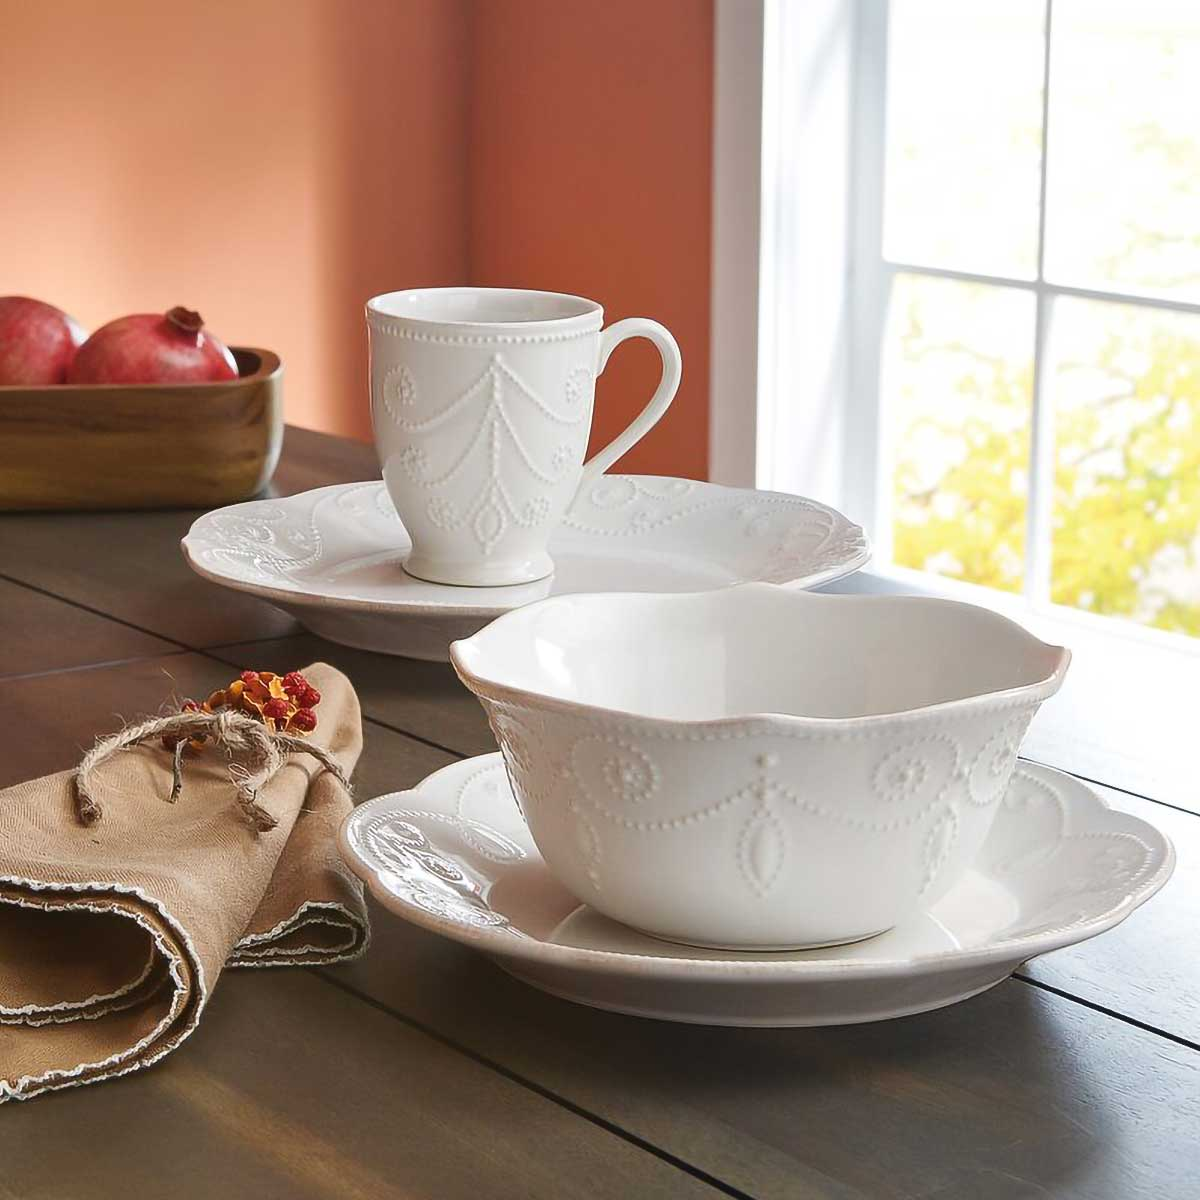 Lenox French Perle Dinnerware on wood table with pomegranates.